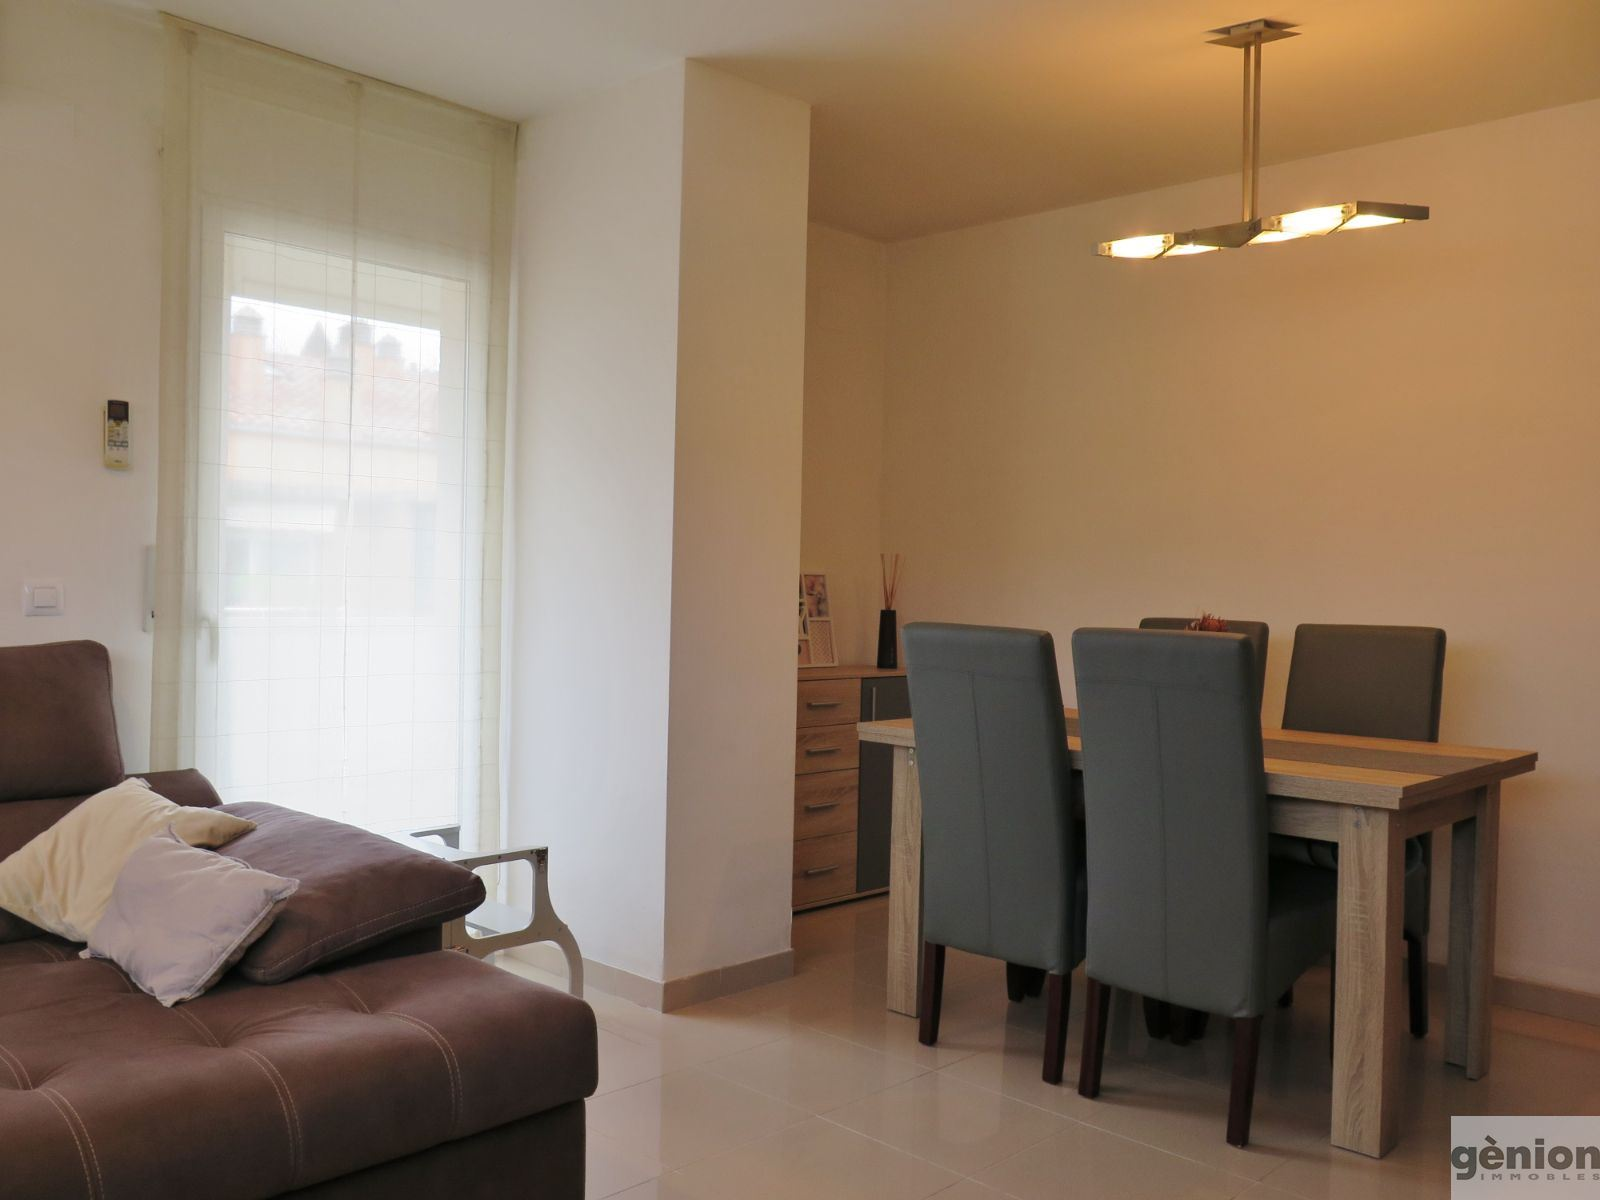 TWO-STOREY APARTMENT WITH 4 BEDROOMS AND A TERRACE IN GIRONA'S LA DEVESA DISTRICT, WITH LOFT STORAGE AREA.